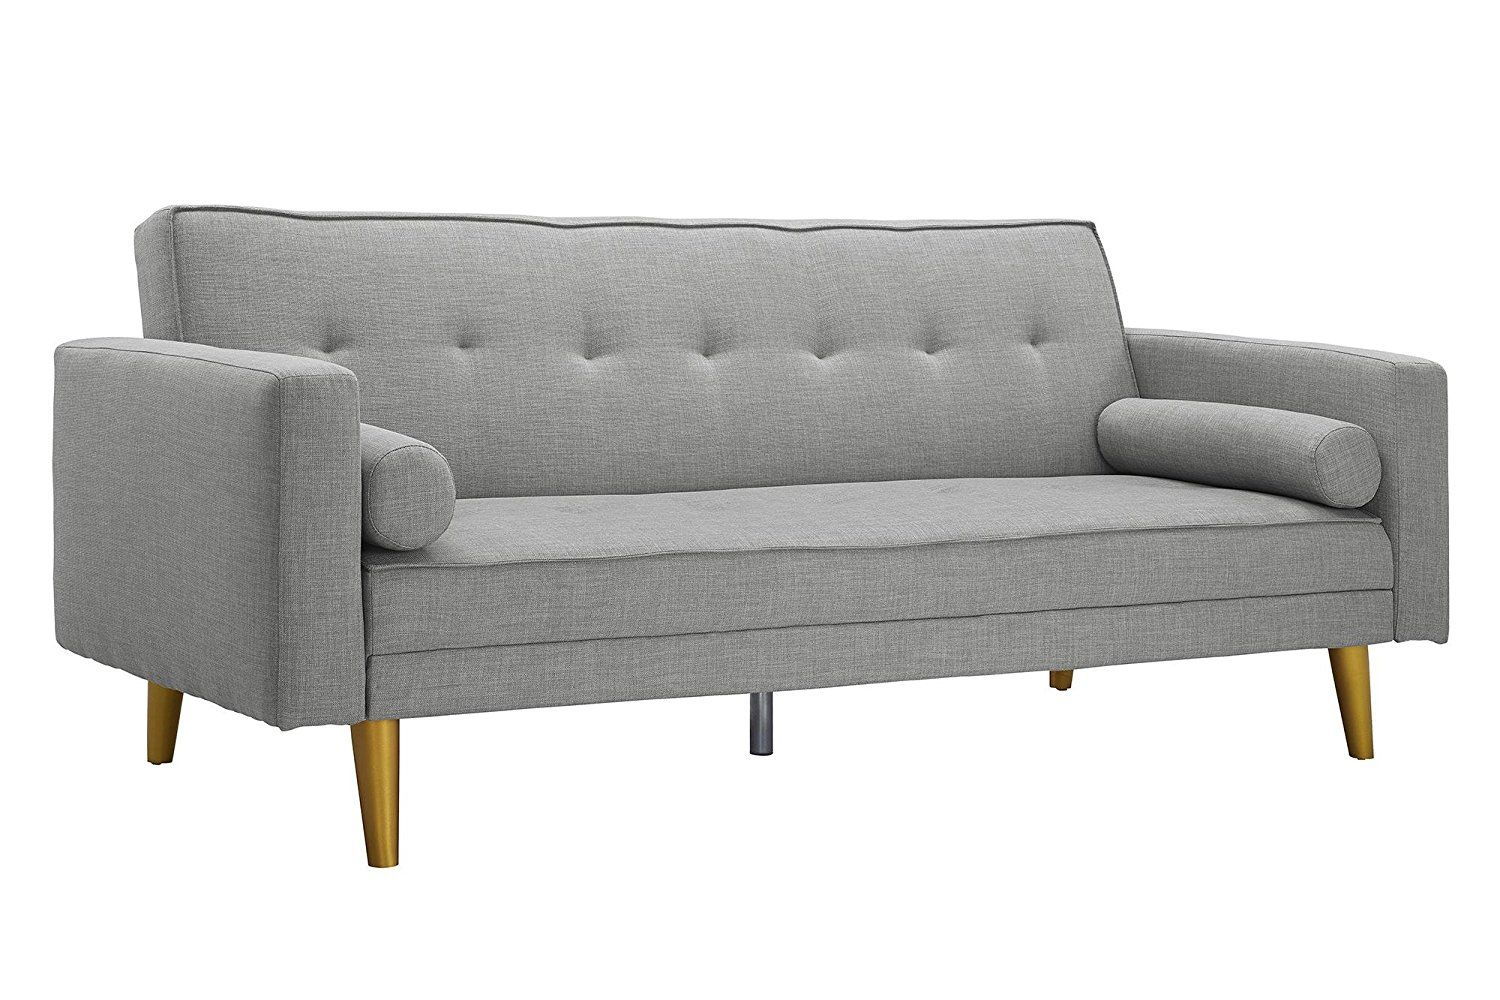 Amazon Sofa Bed Grey Hgtv S The Novogratz Stars Just Opened An Amazon Shop Hgtv The